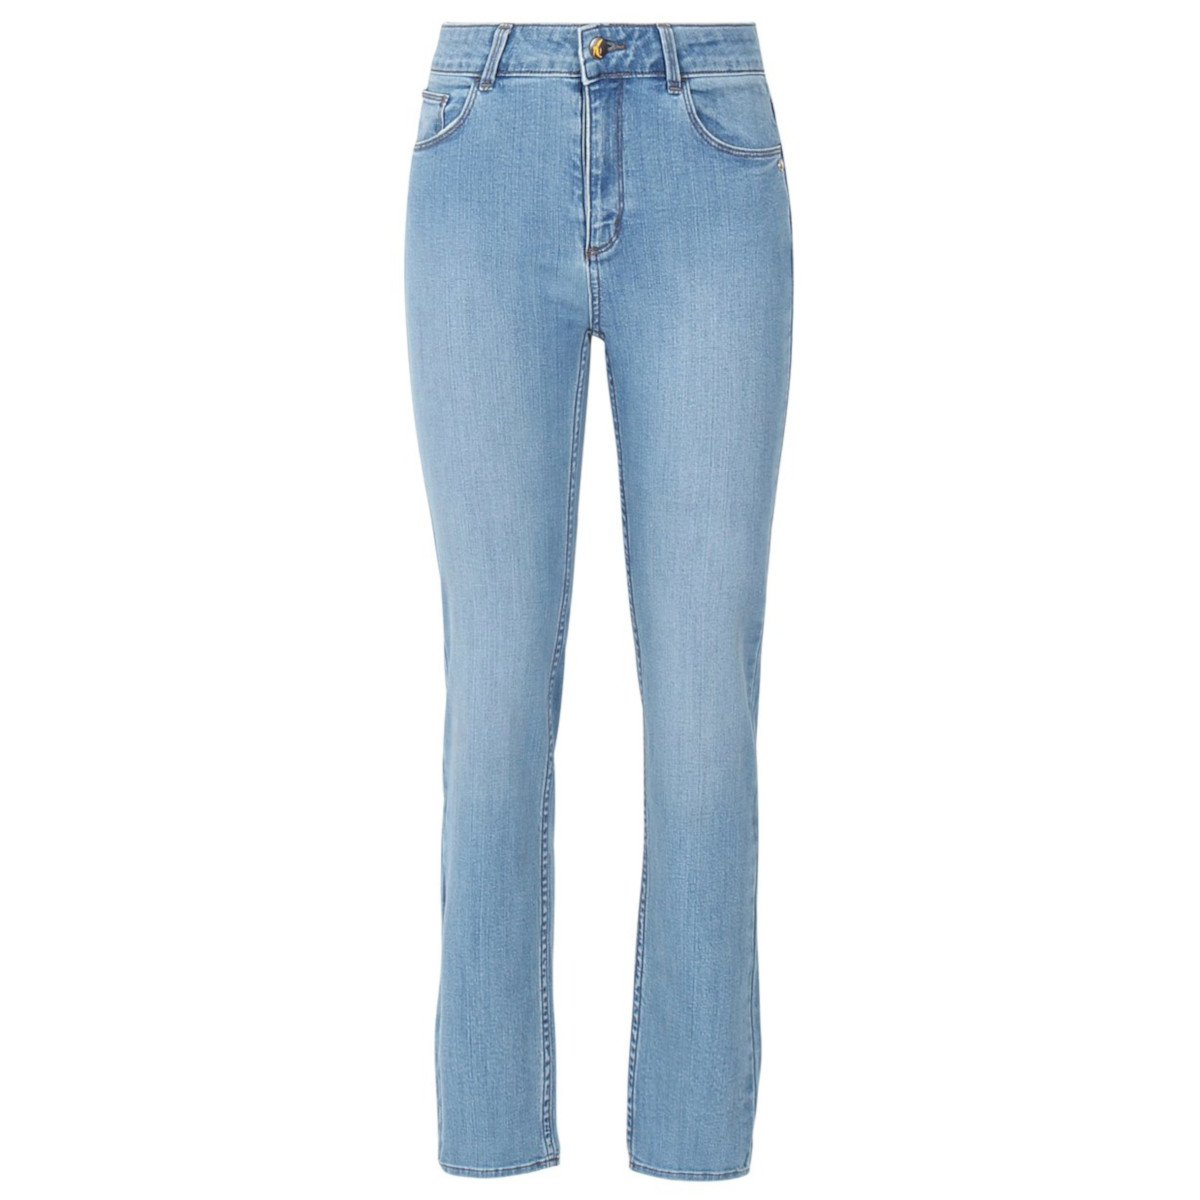 Jeans Emily Slim Fit Light Wash in cotone biologico